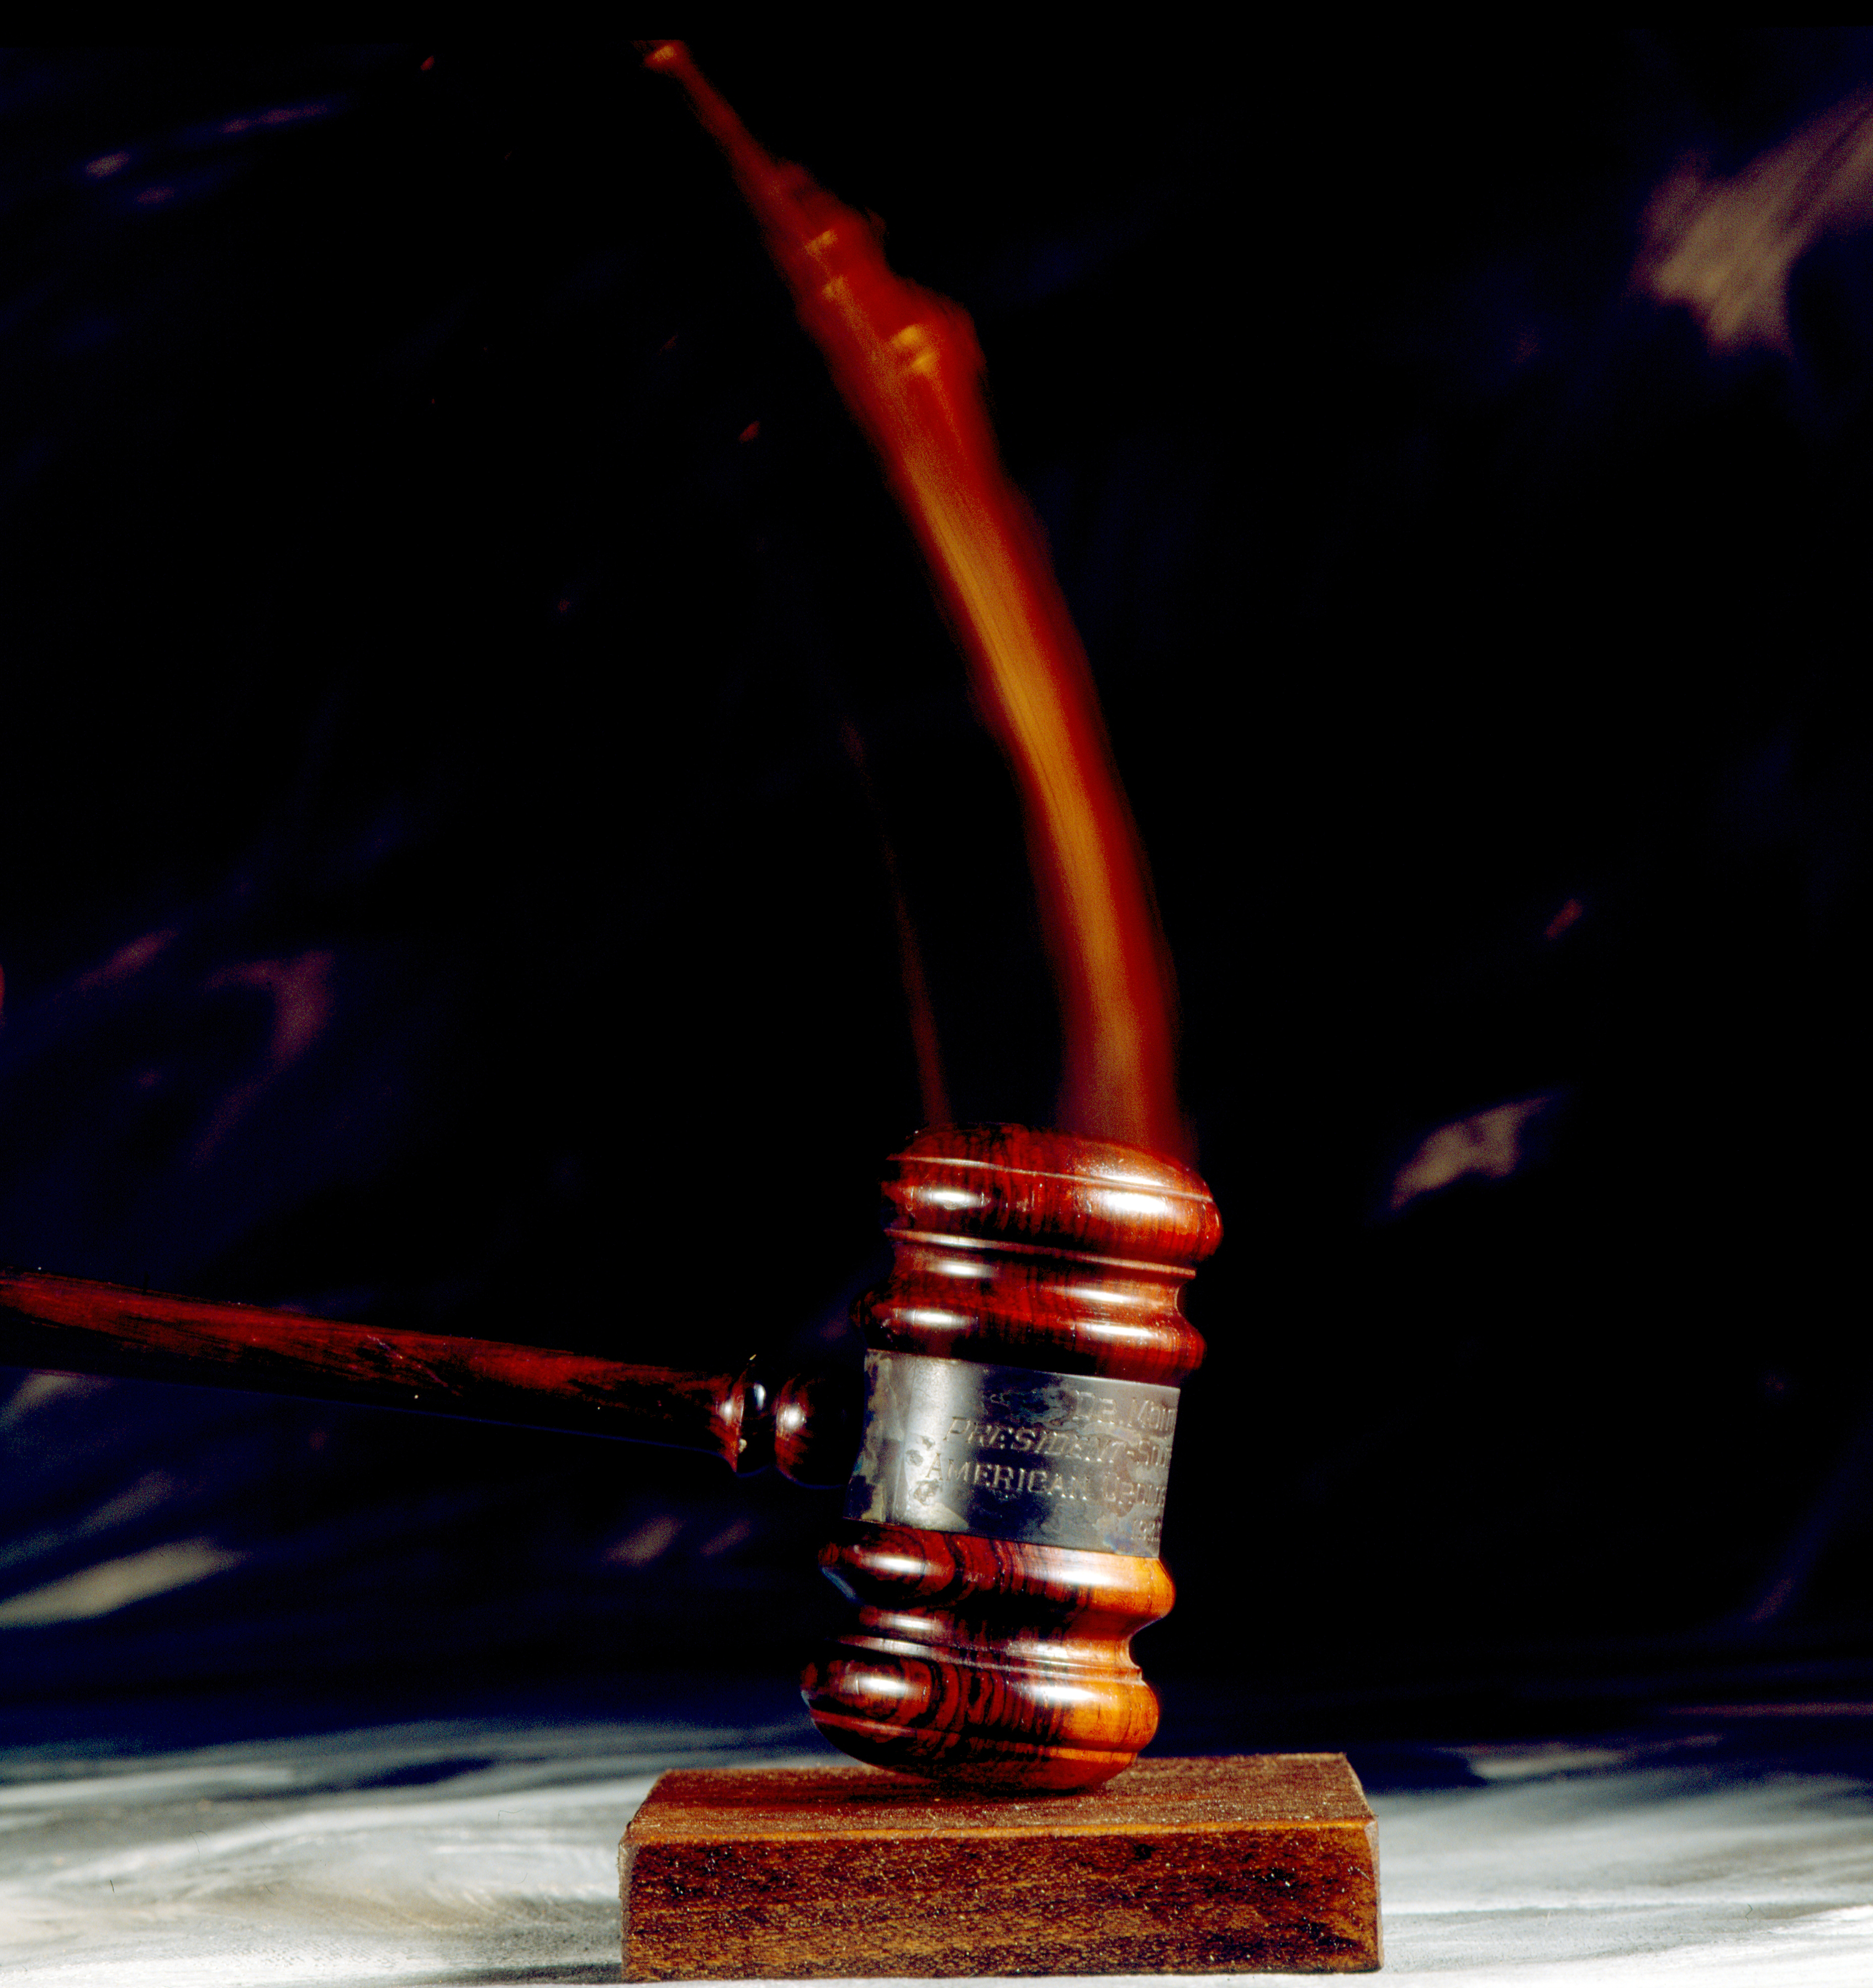 Gavel Striking Surface. Education Images—UIG via Getty Images